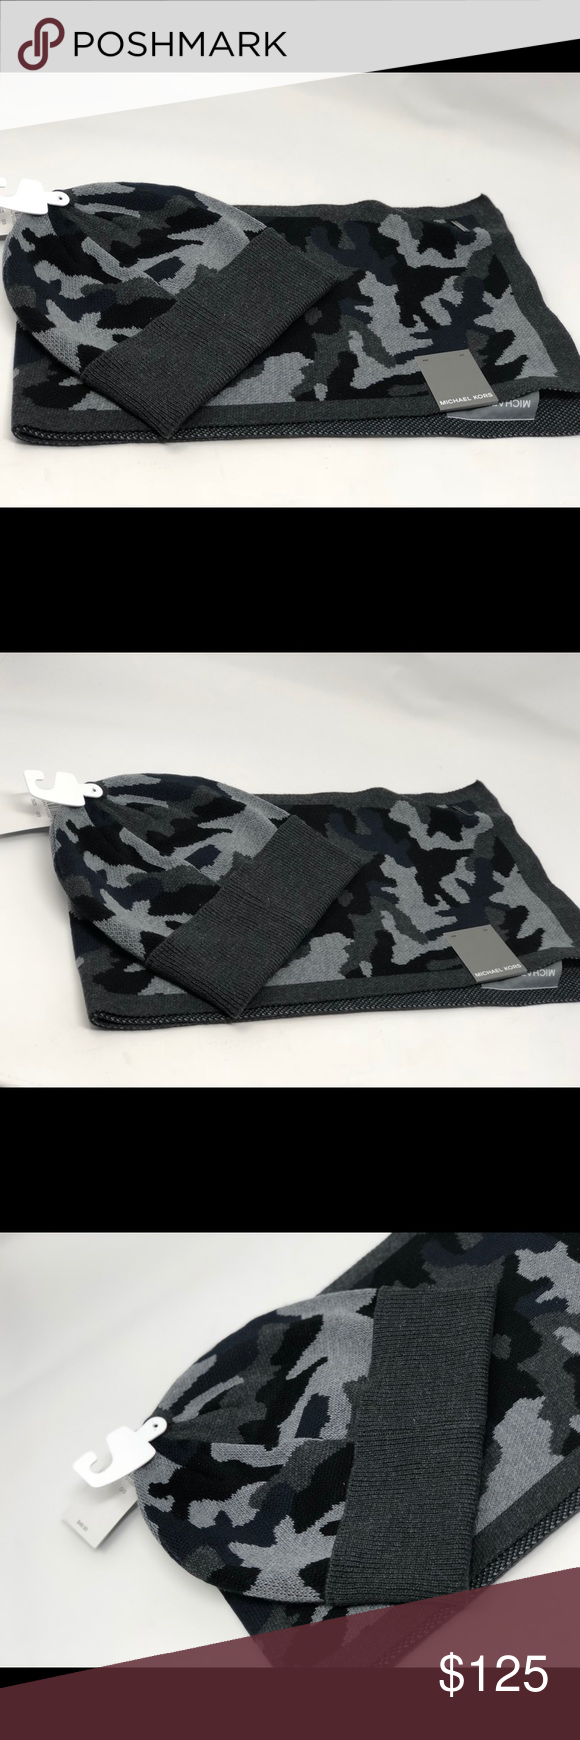 f245b6f859d Michael kors camouflage scarf and hat set for men NWT Michael Kors  Accessories Scarves